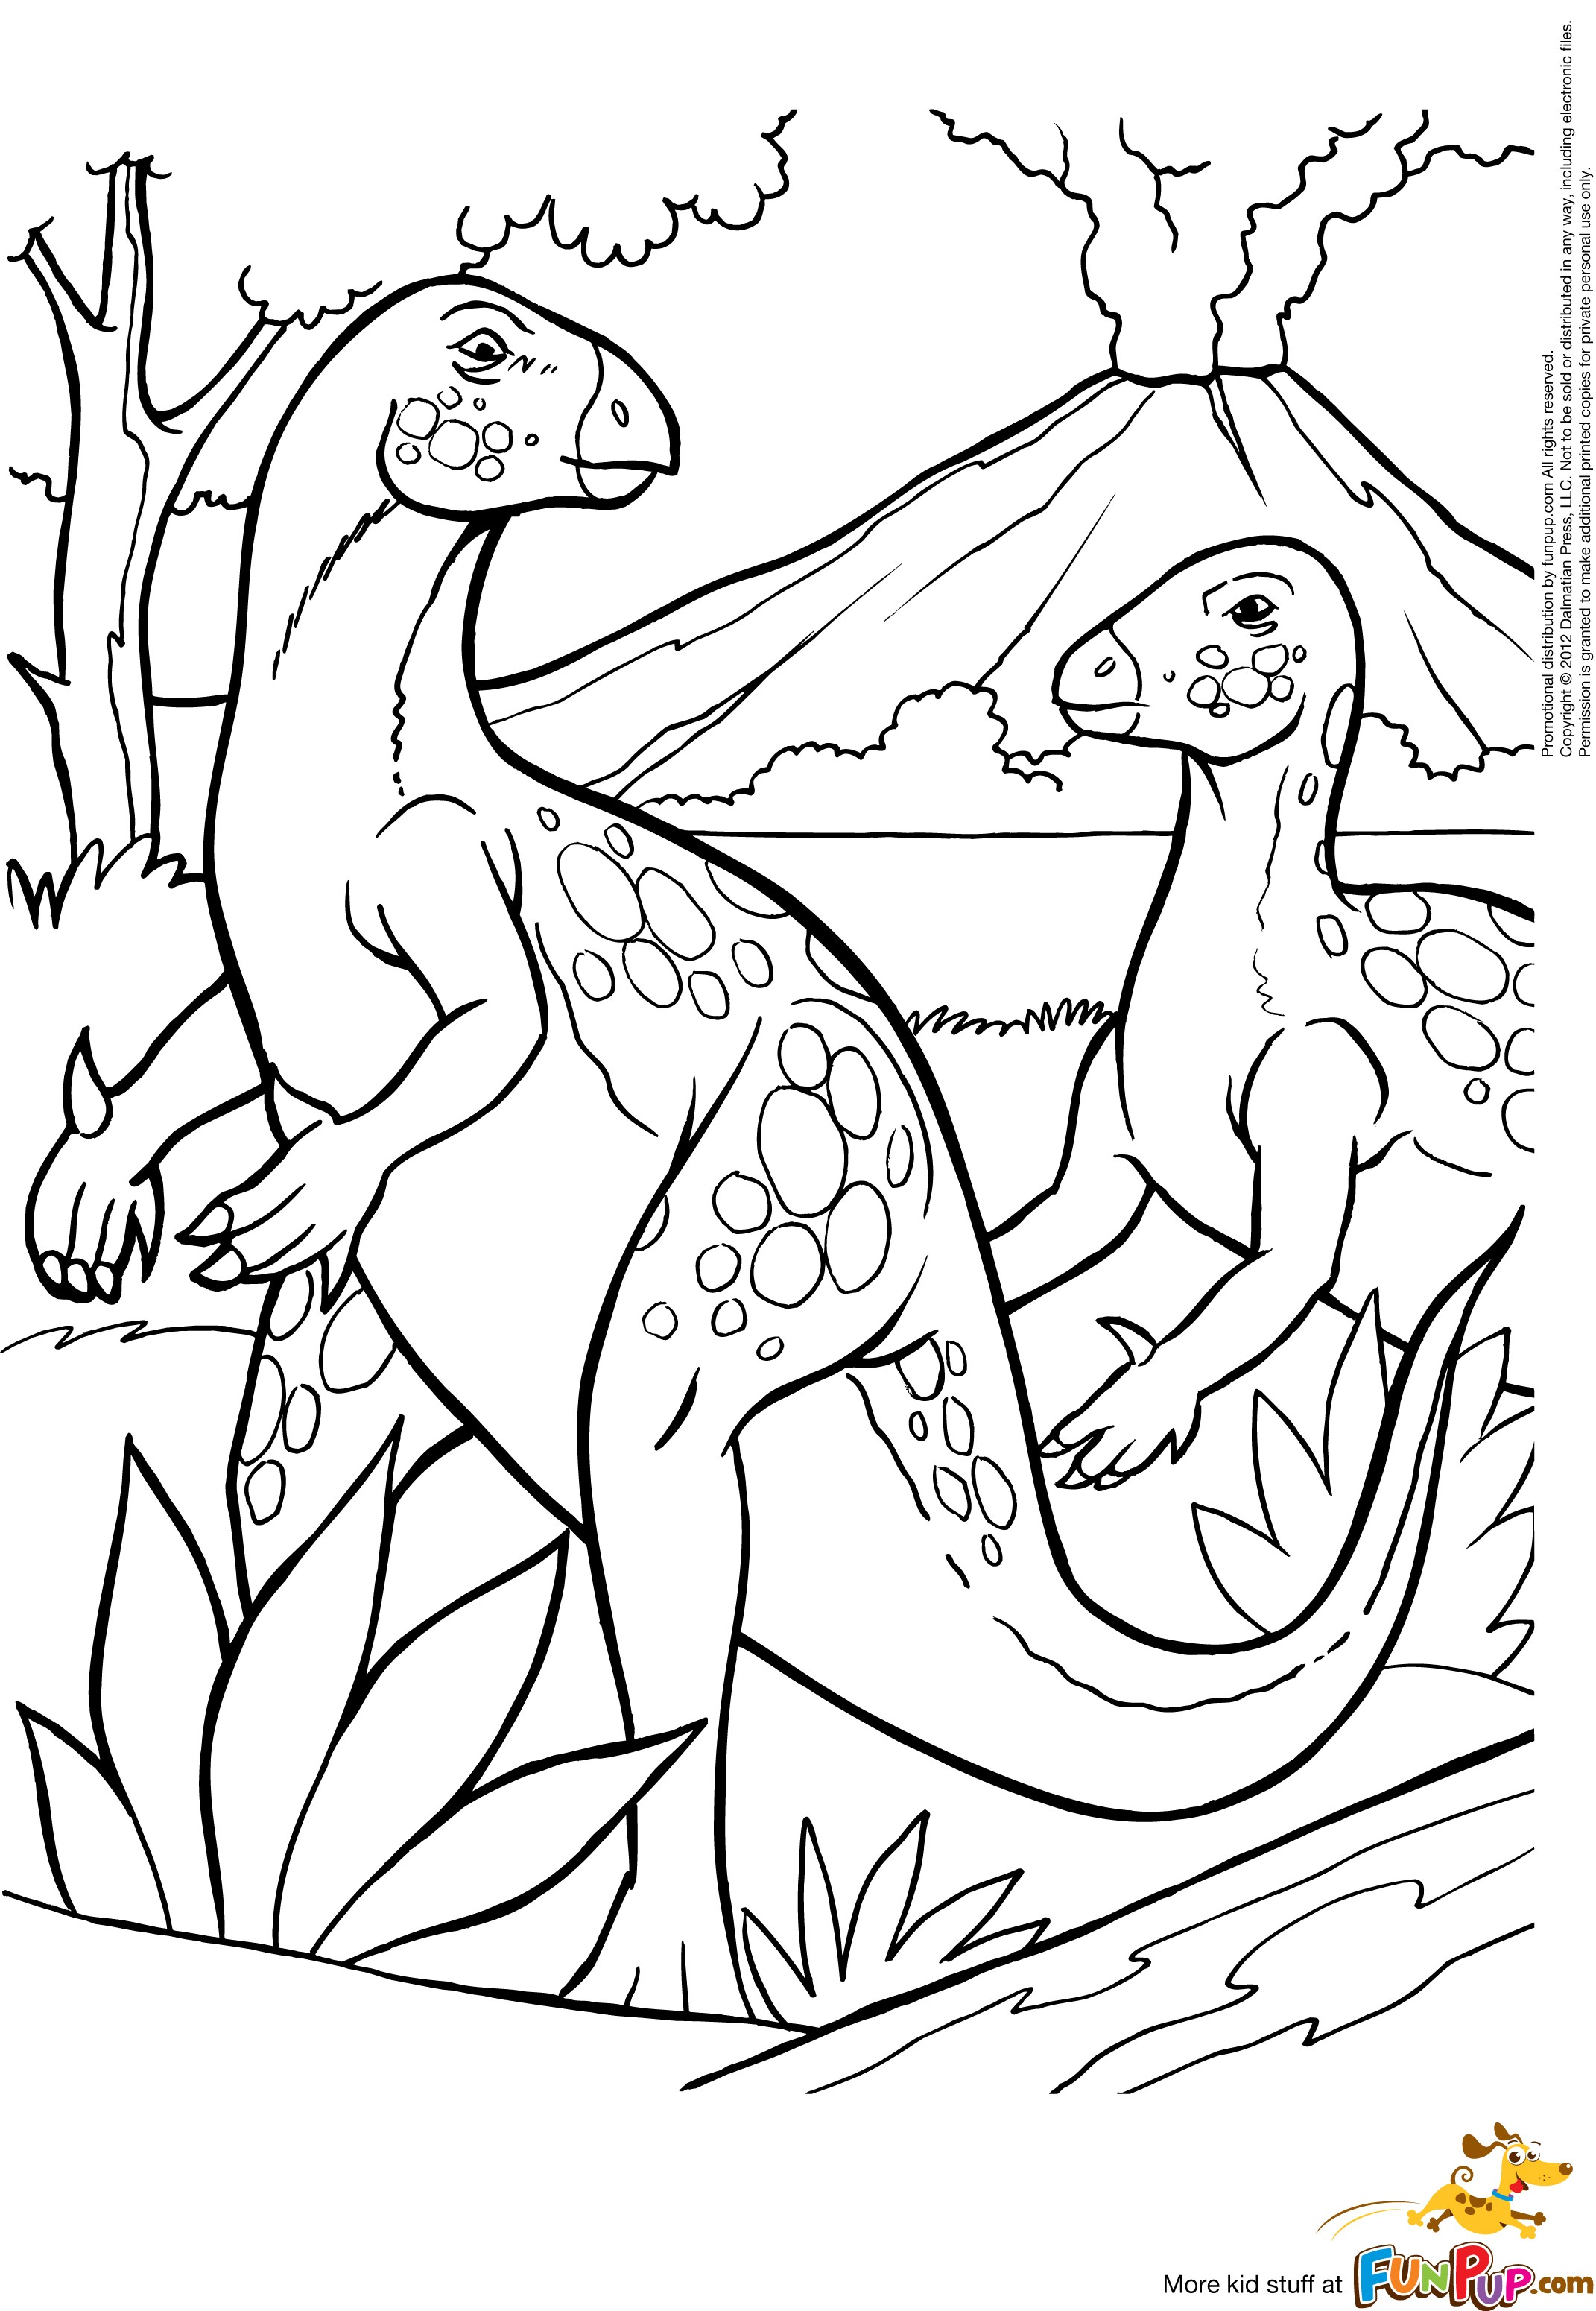 Volcano Coloring Pages For Kids